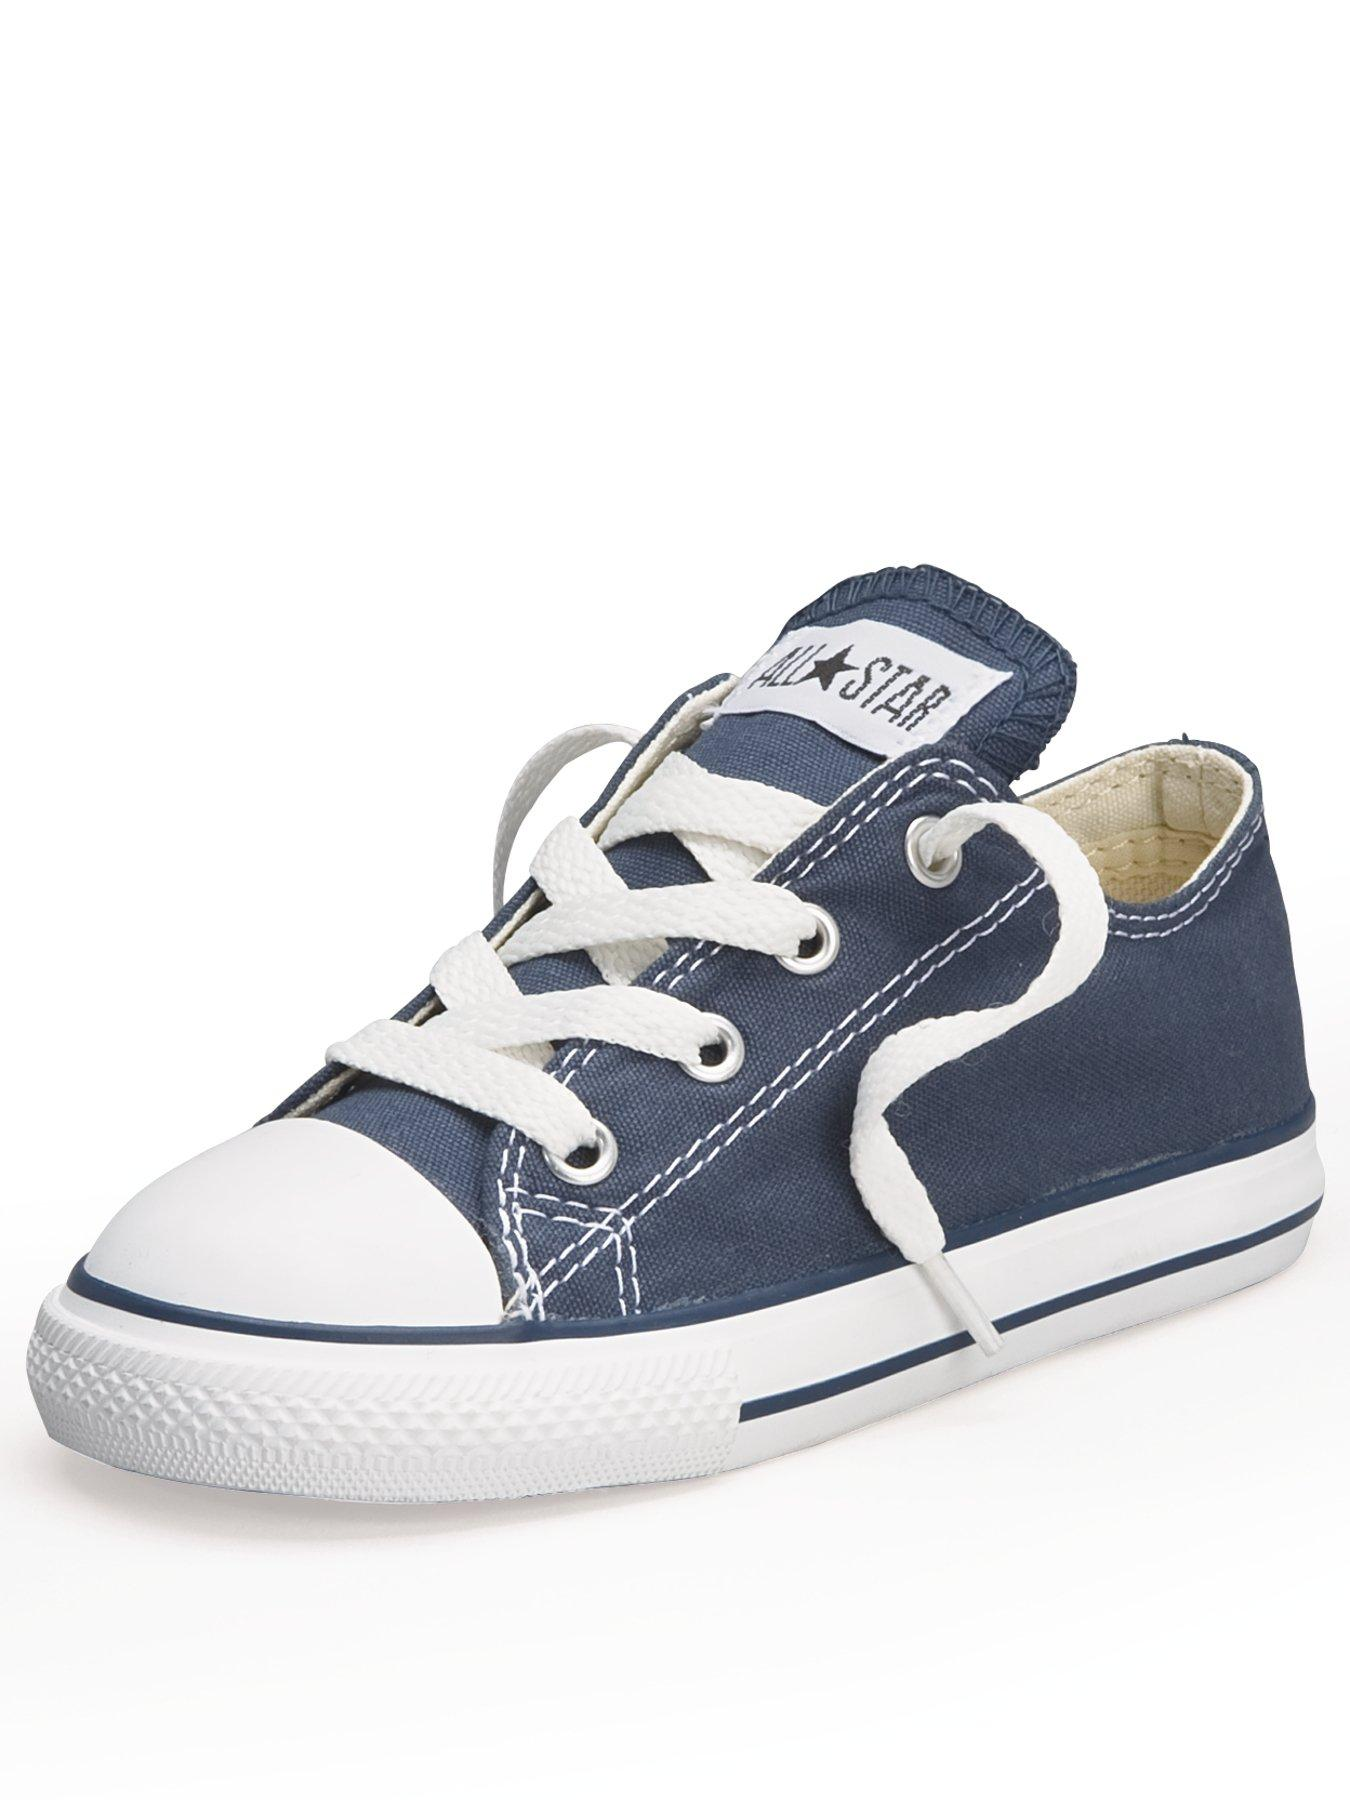 baby converse jd sports